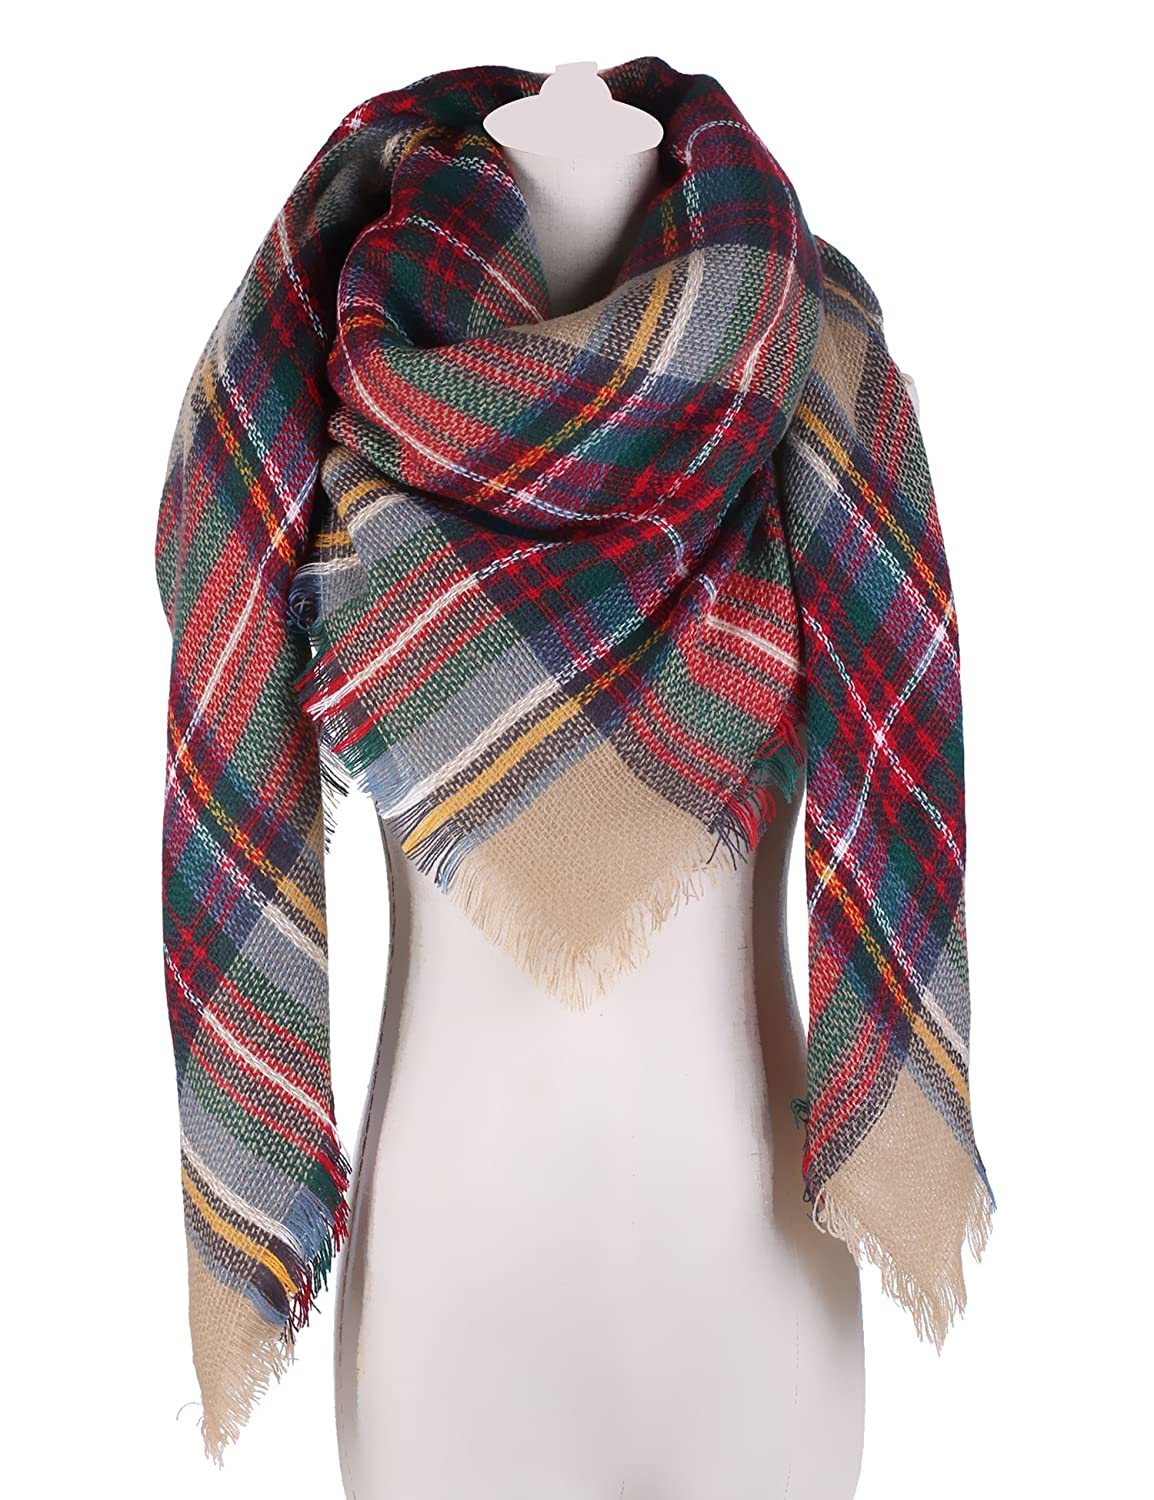 4859a1cb57c Large Tartan Blanket Scarf Warm Checked Plaid Shawl for Womens at Amazon  Women s Clothing store